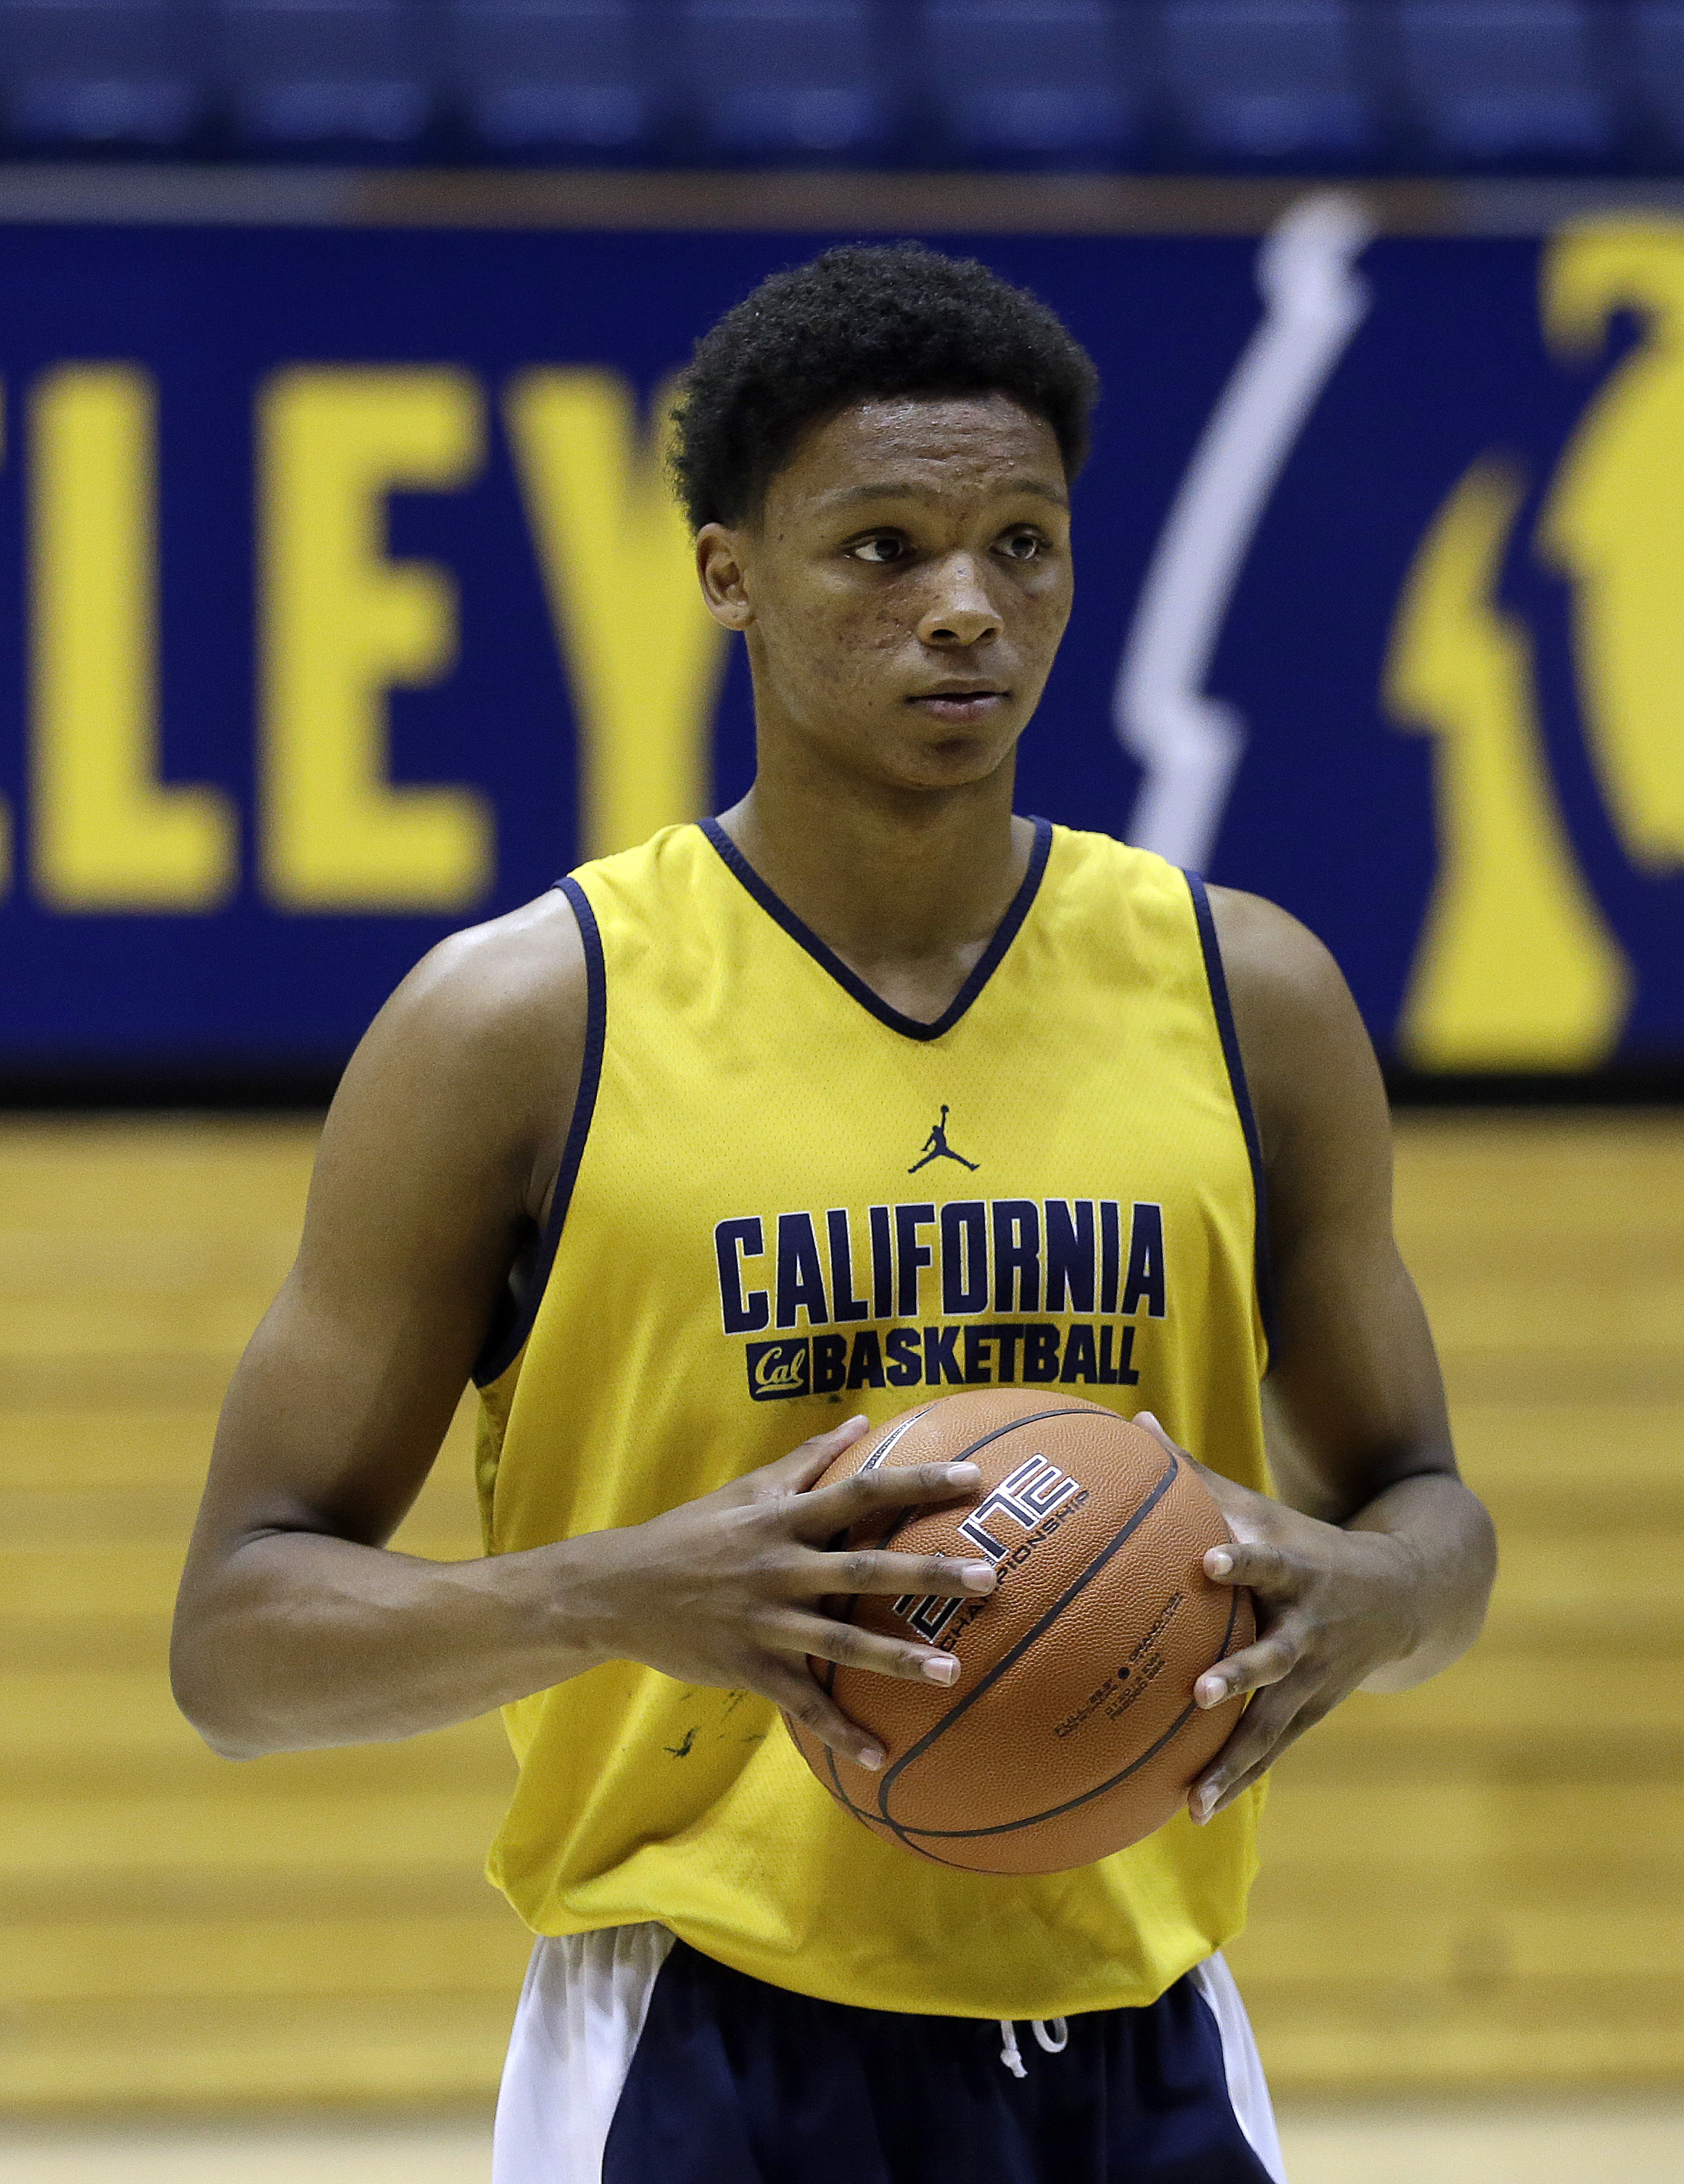 California's Ivan Rabb prepares for a drill during basketball practice Wednesday, Oct. 7, 2015, in Berkeley, Calif. (AP Photo/Ben Margot)